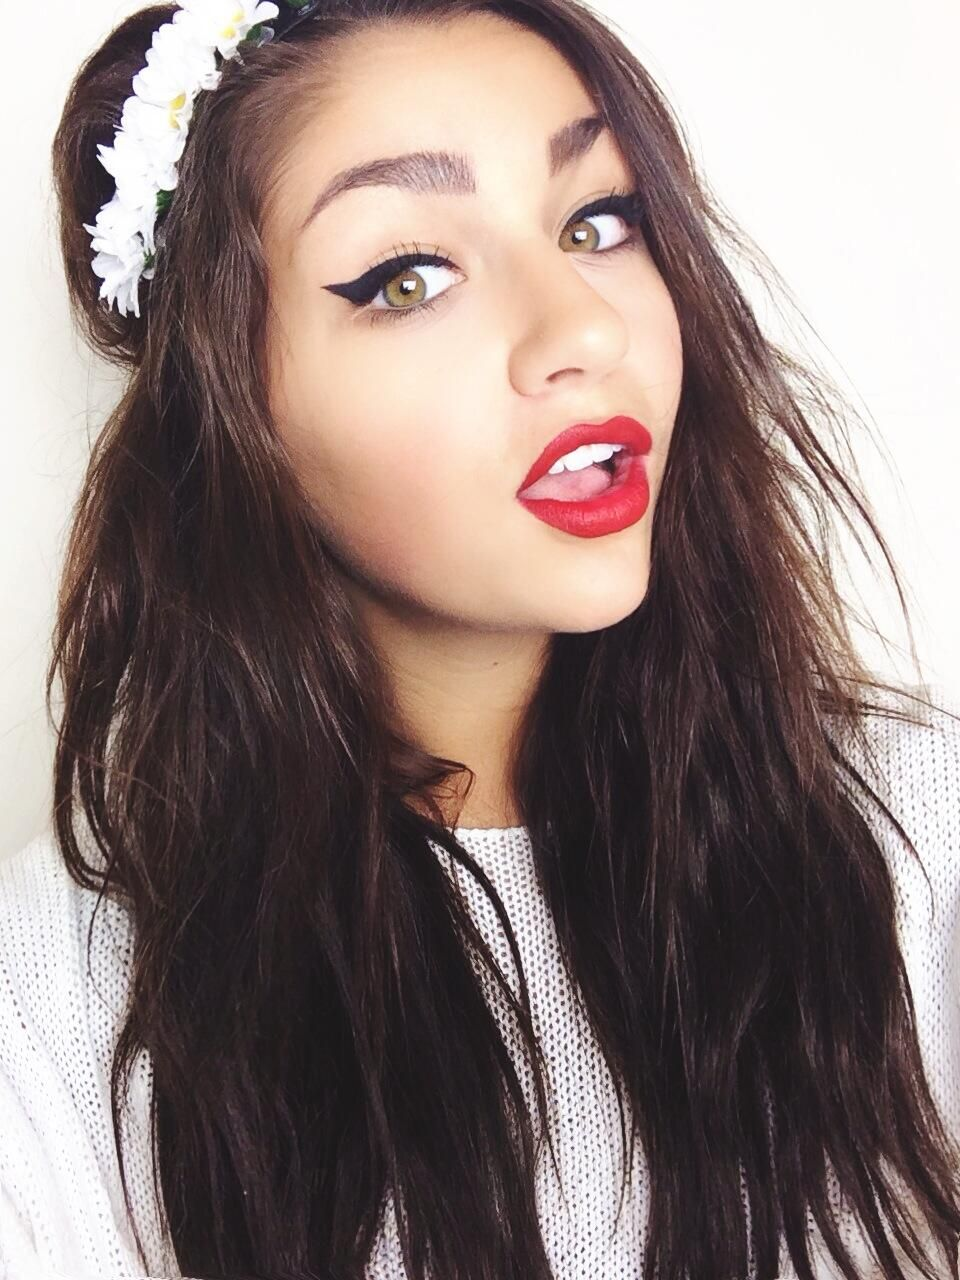 andrea russett!!!! And yes I did watch this video